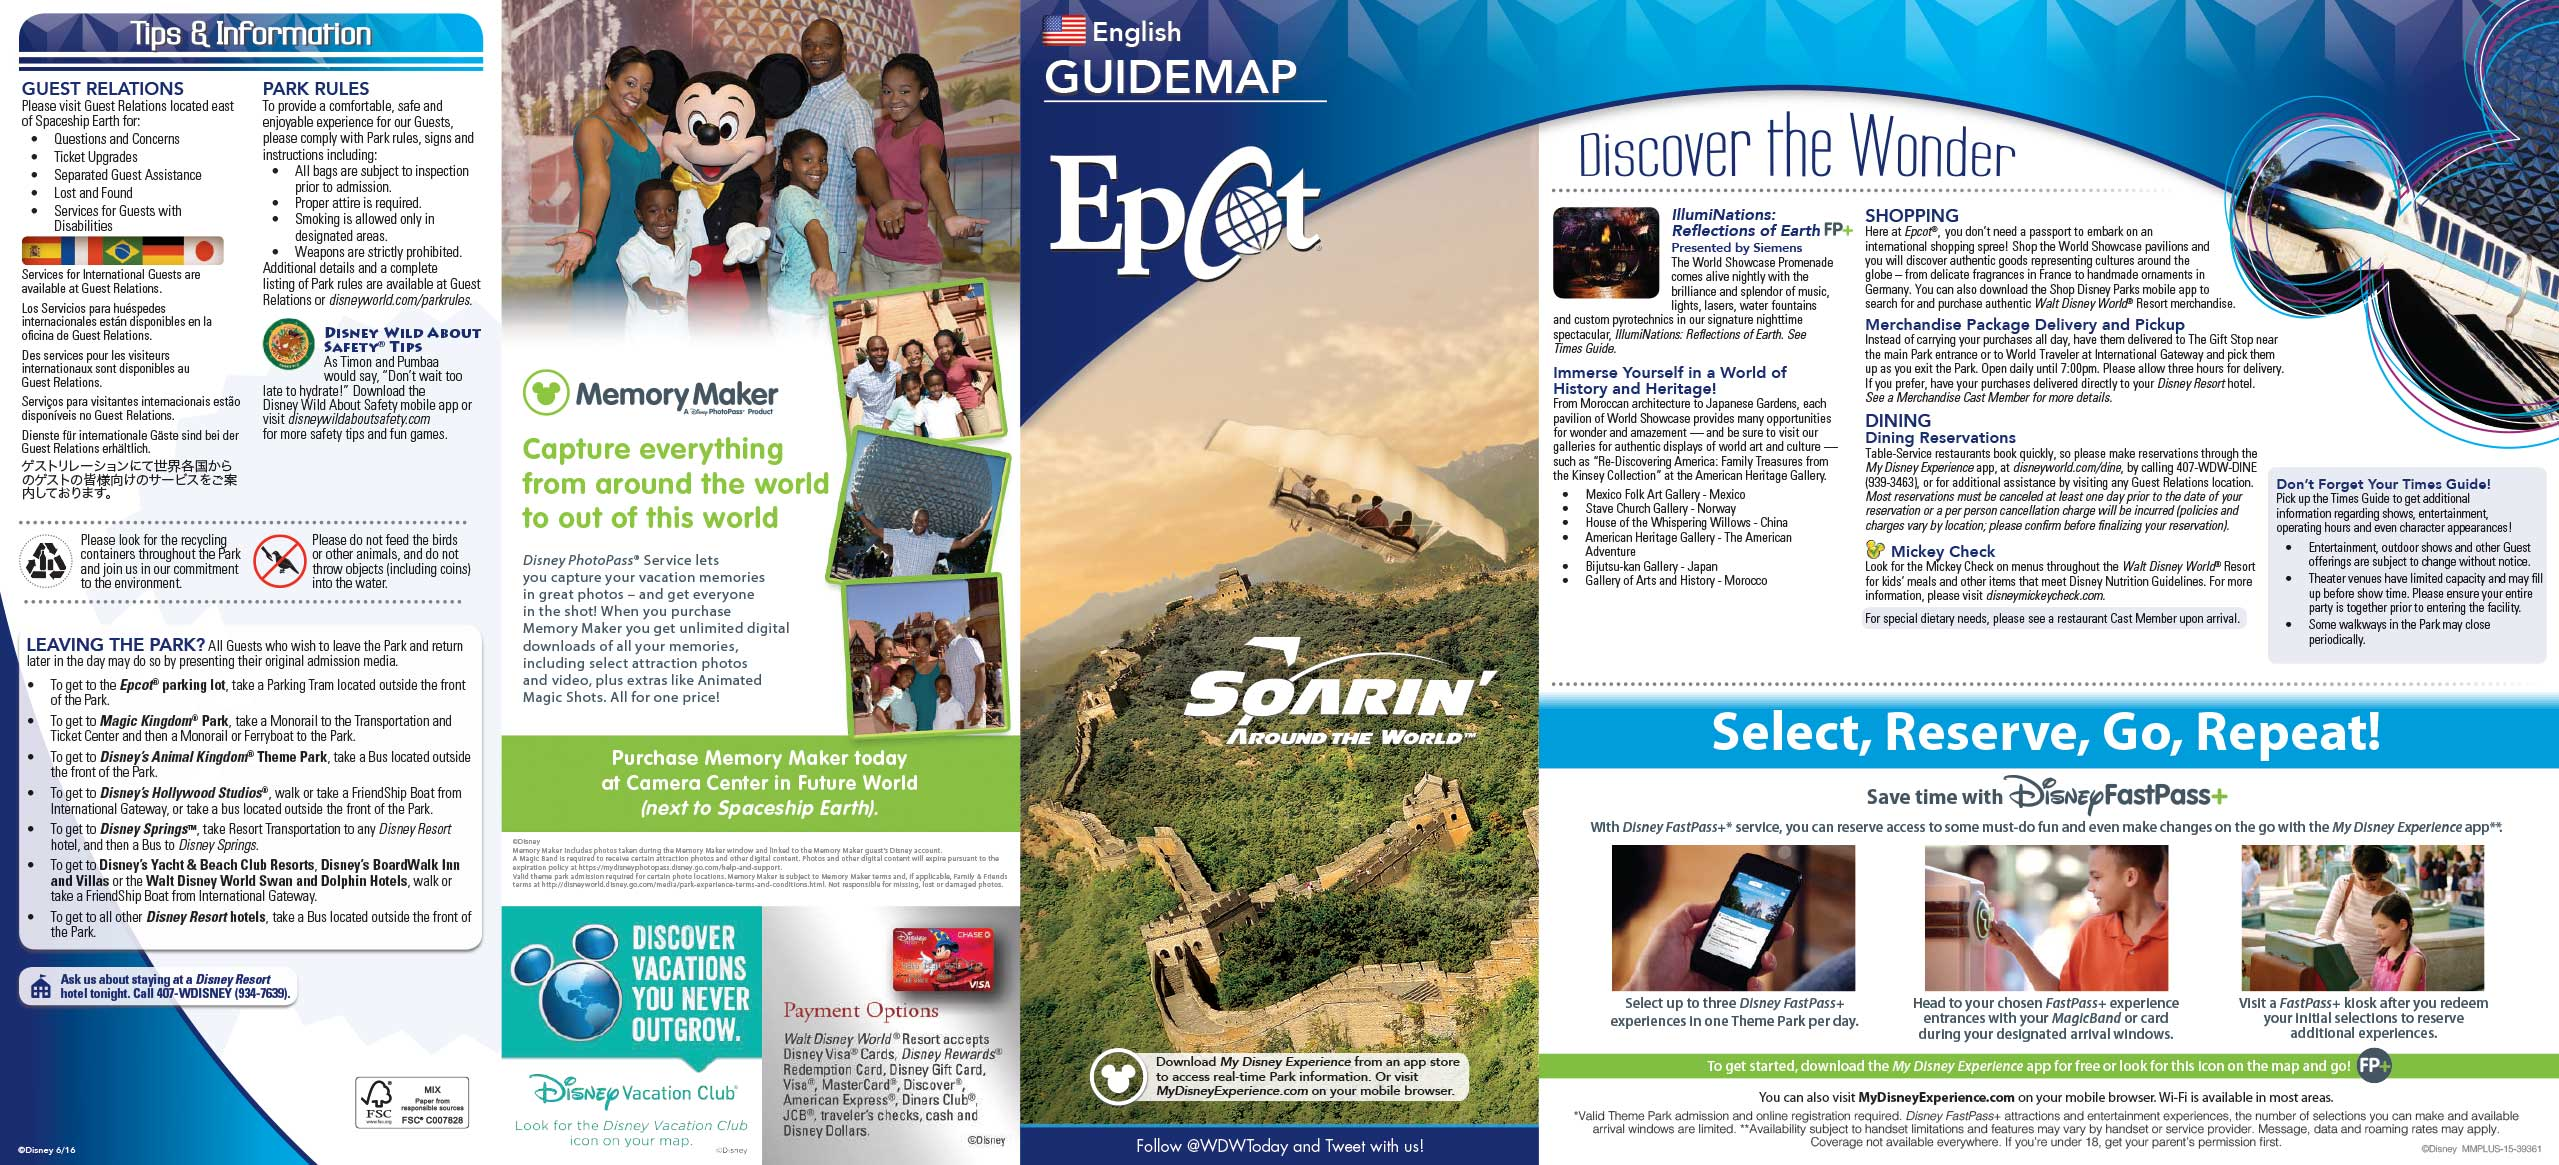 Epcot guide map June 2016 - Front